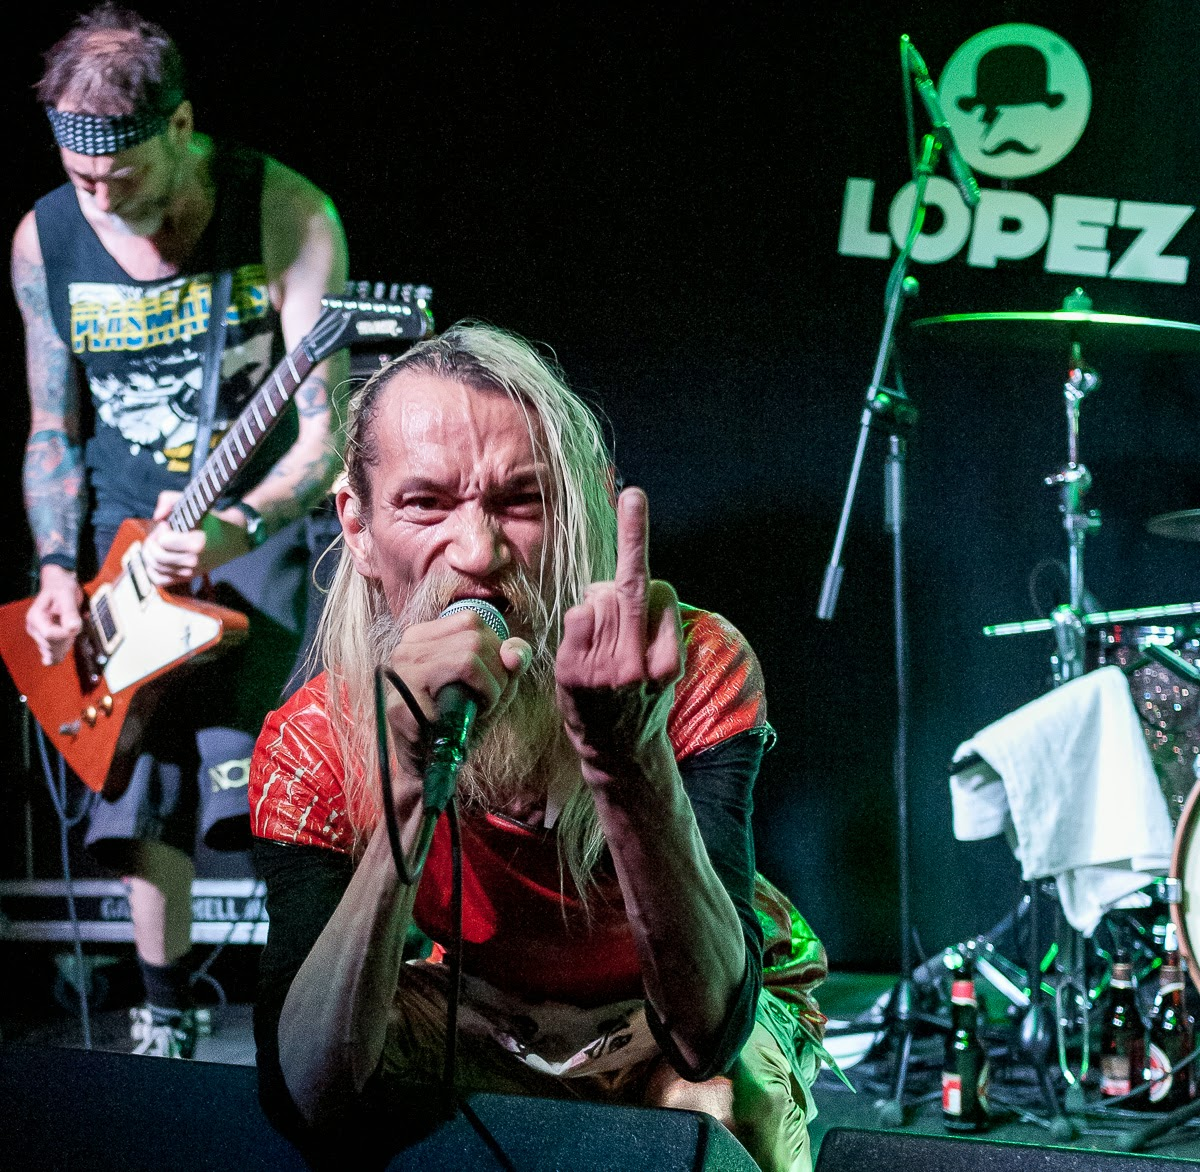 SNFU (Society's No Fucking Use) Zaragoza Sala Lopez